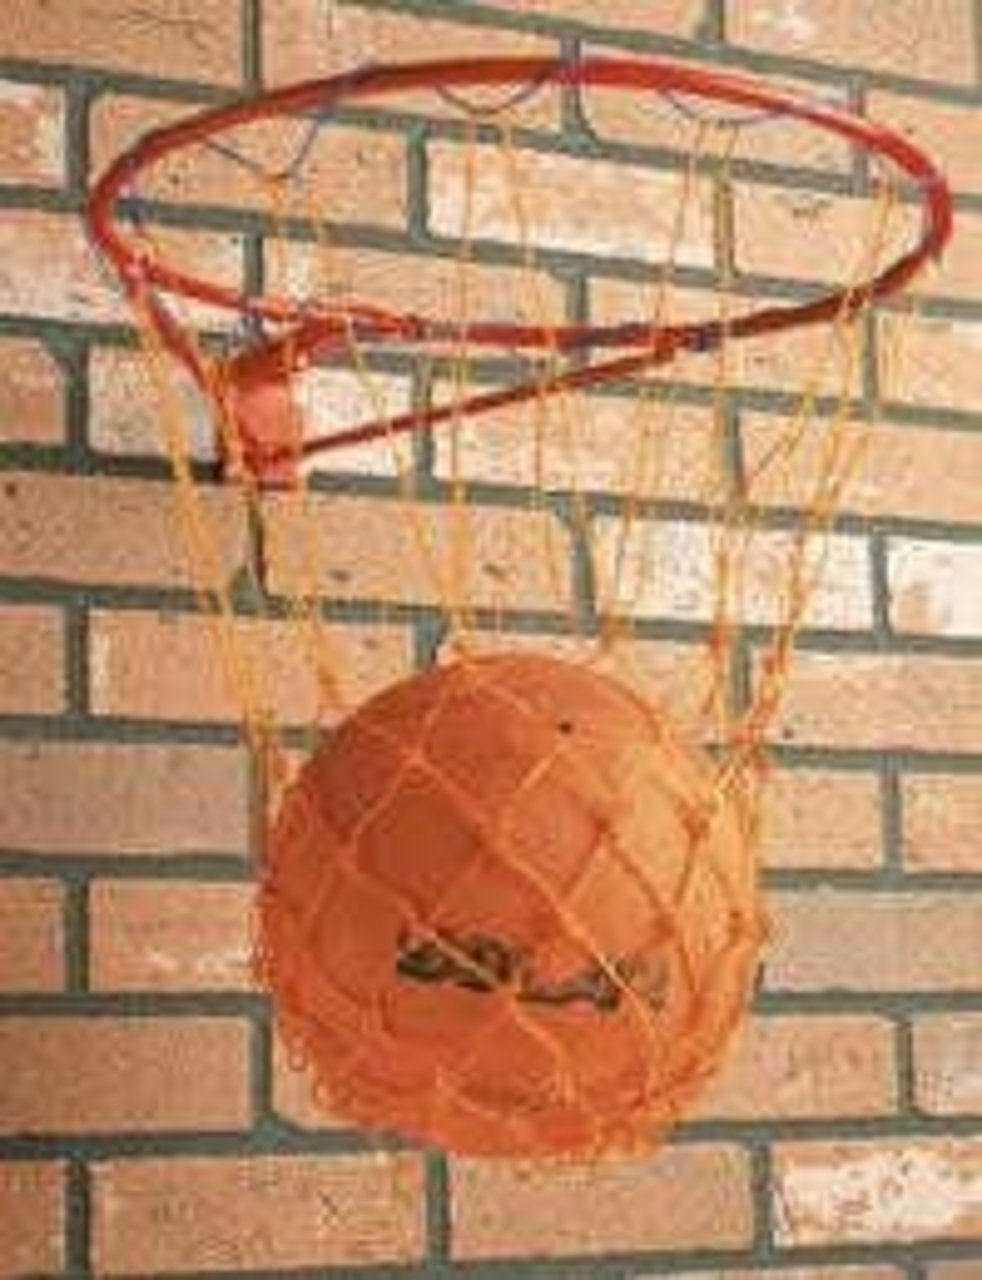 Netball Sports Accessories Indoor Playing Wall Mounted Hoop Ring & Net Set CreativeMinds UK